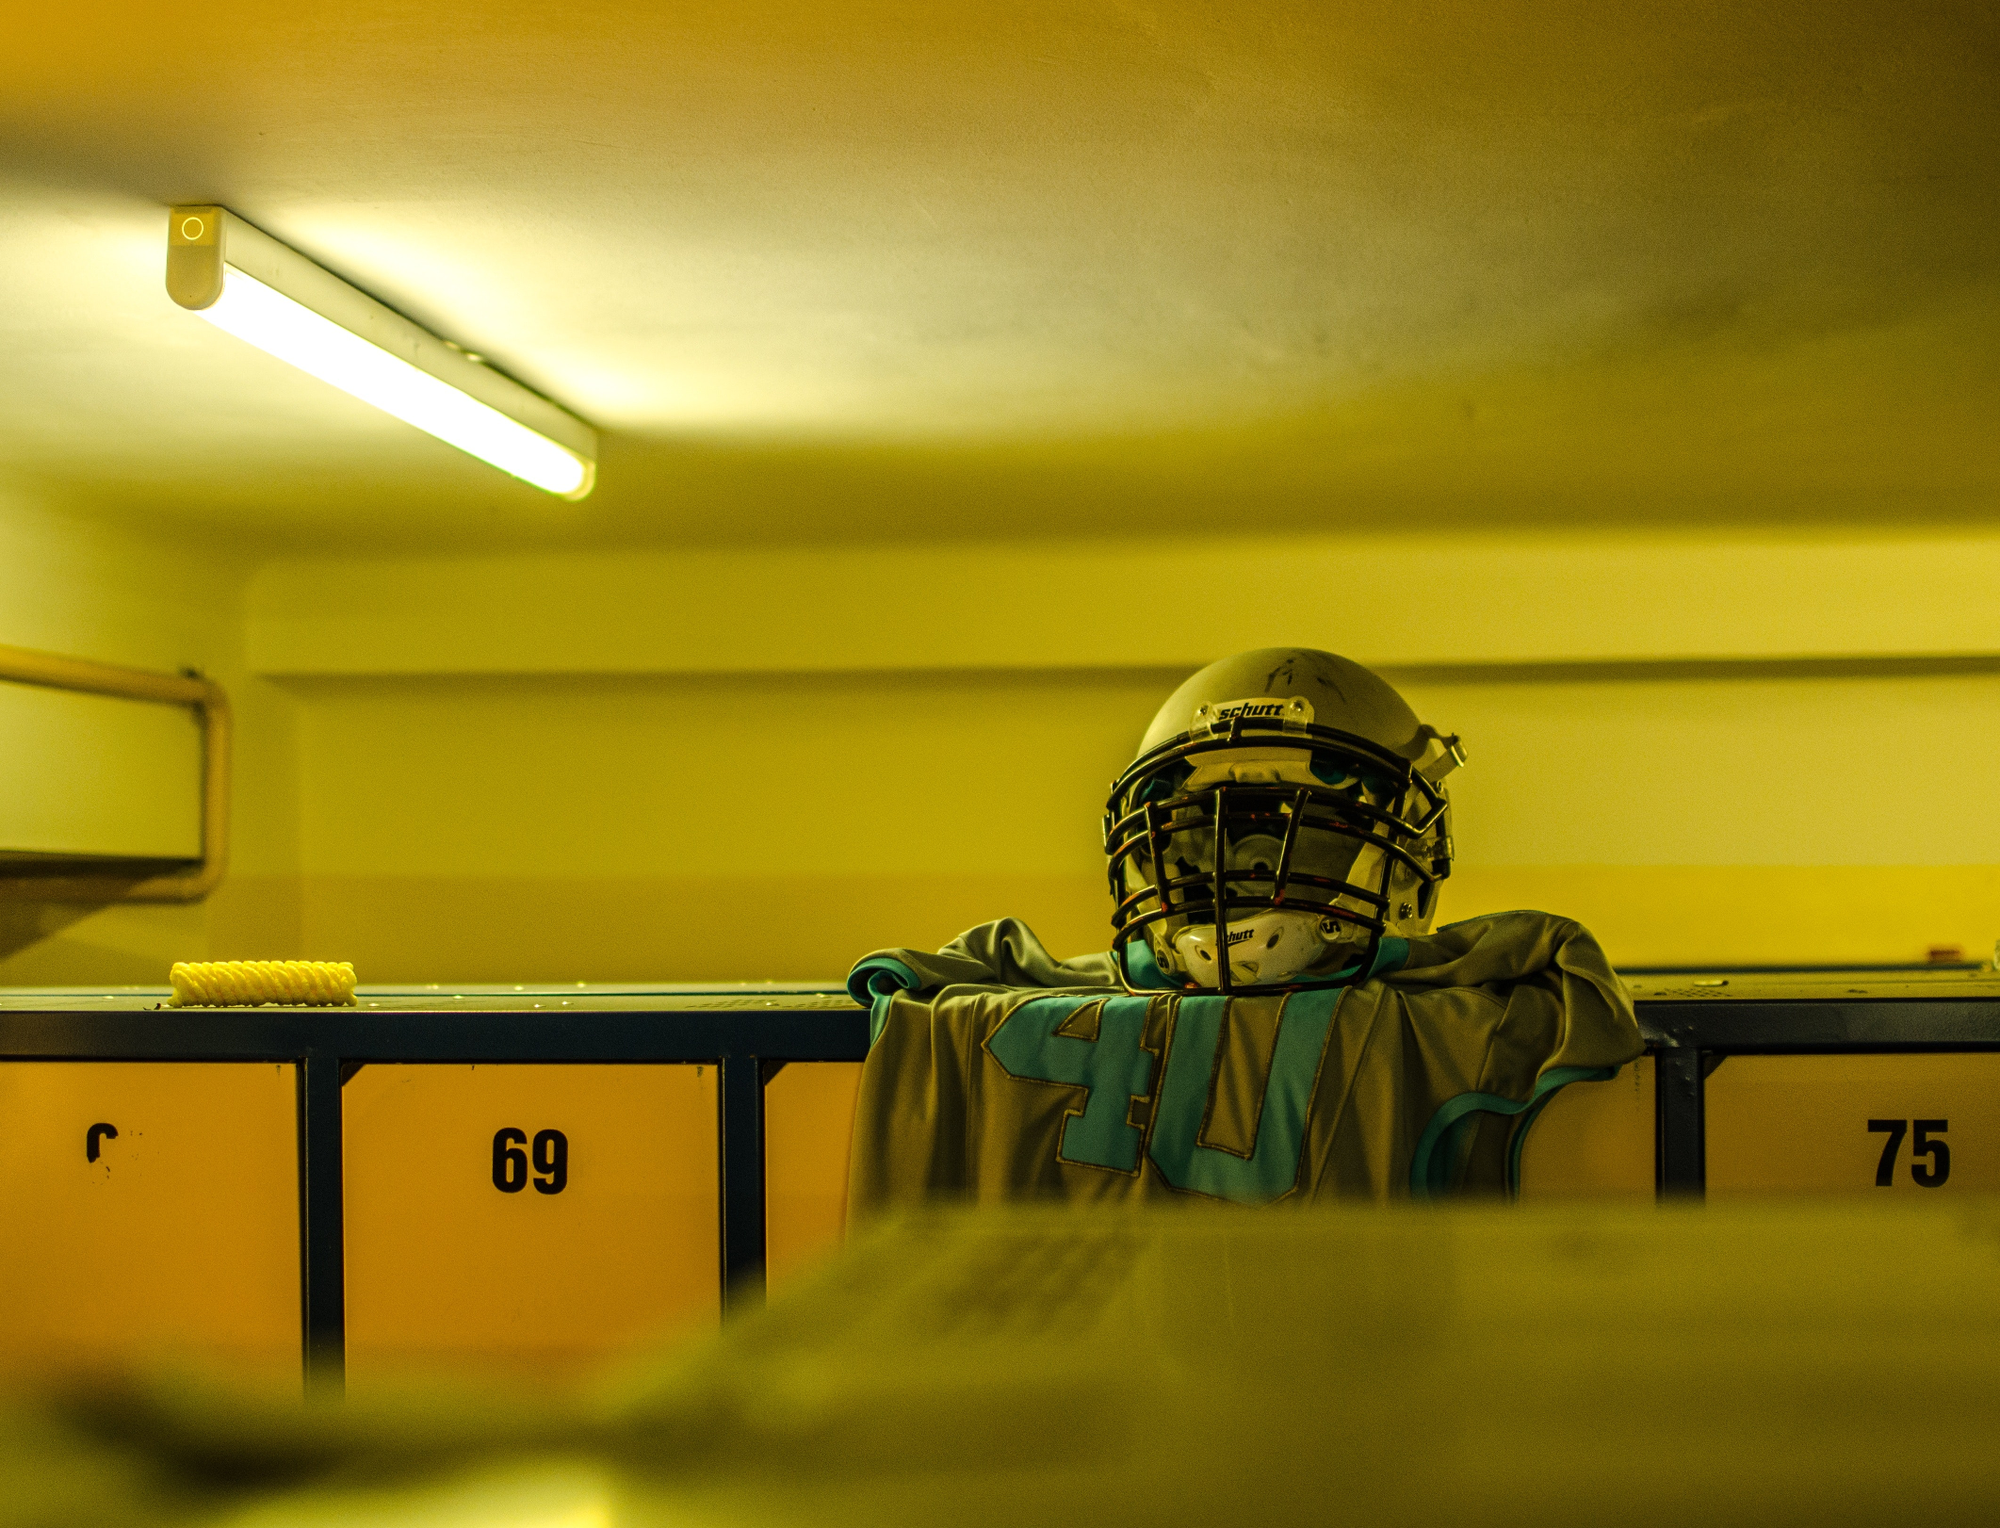 Jersey draped over lockers